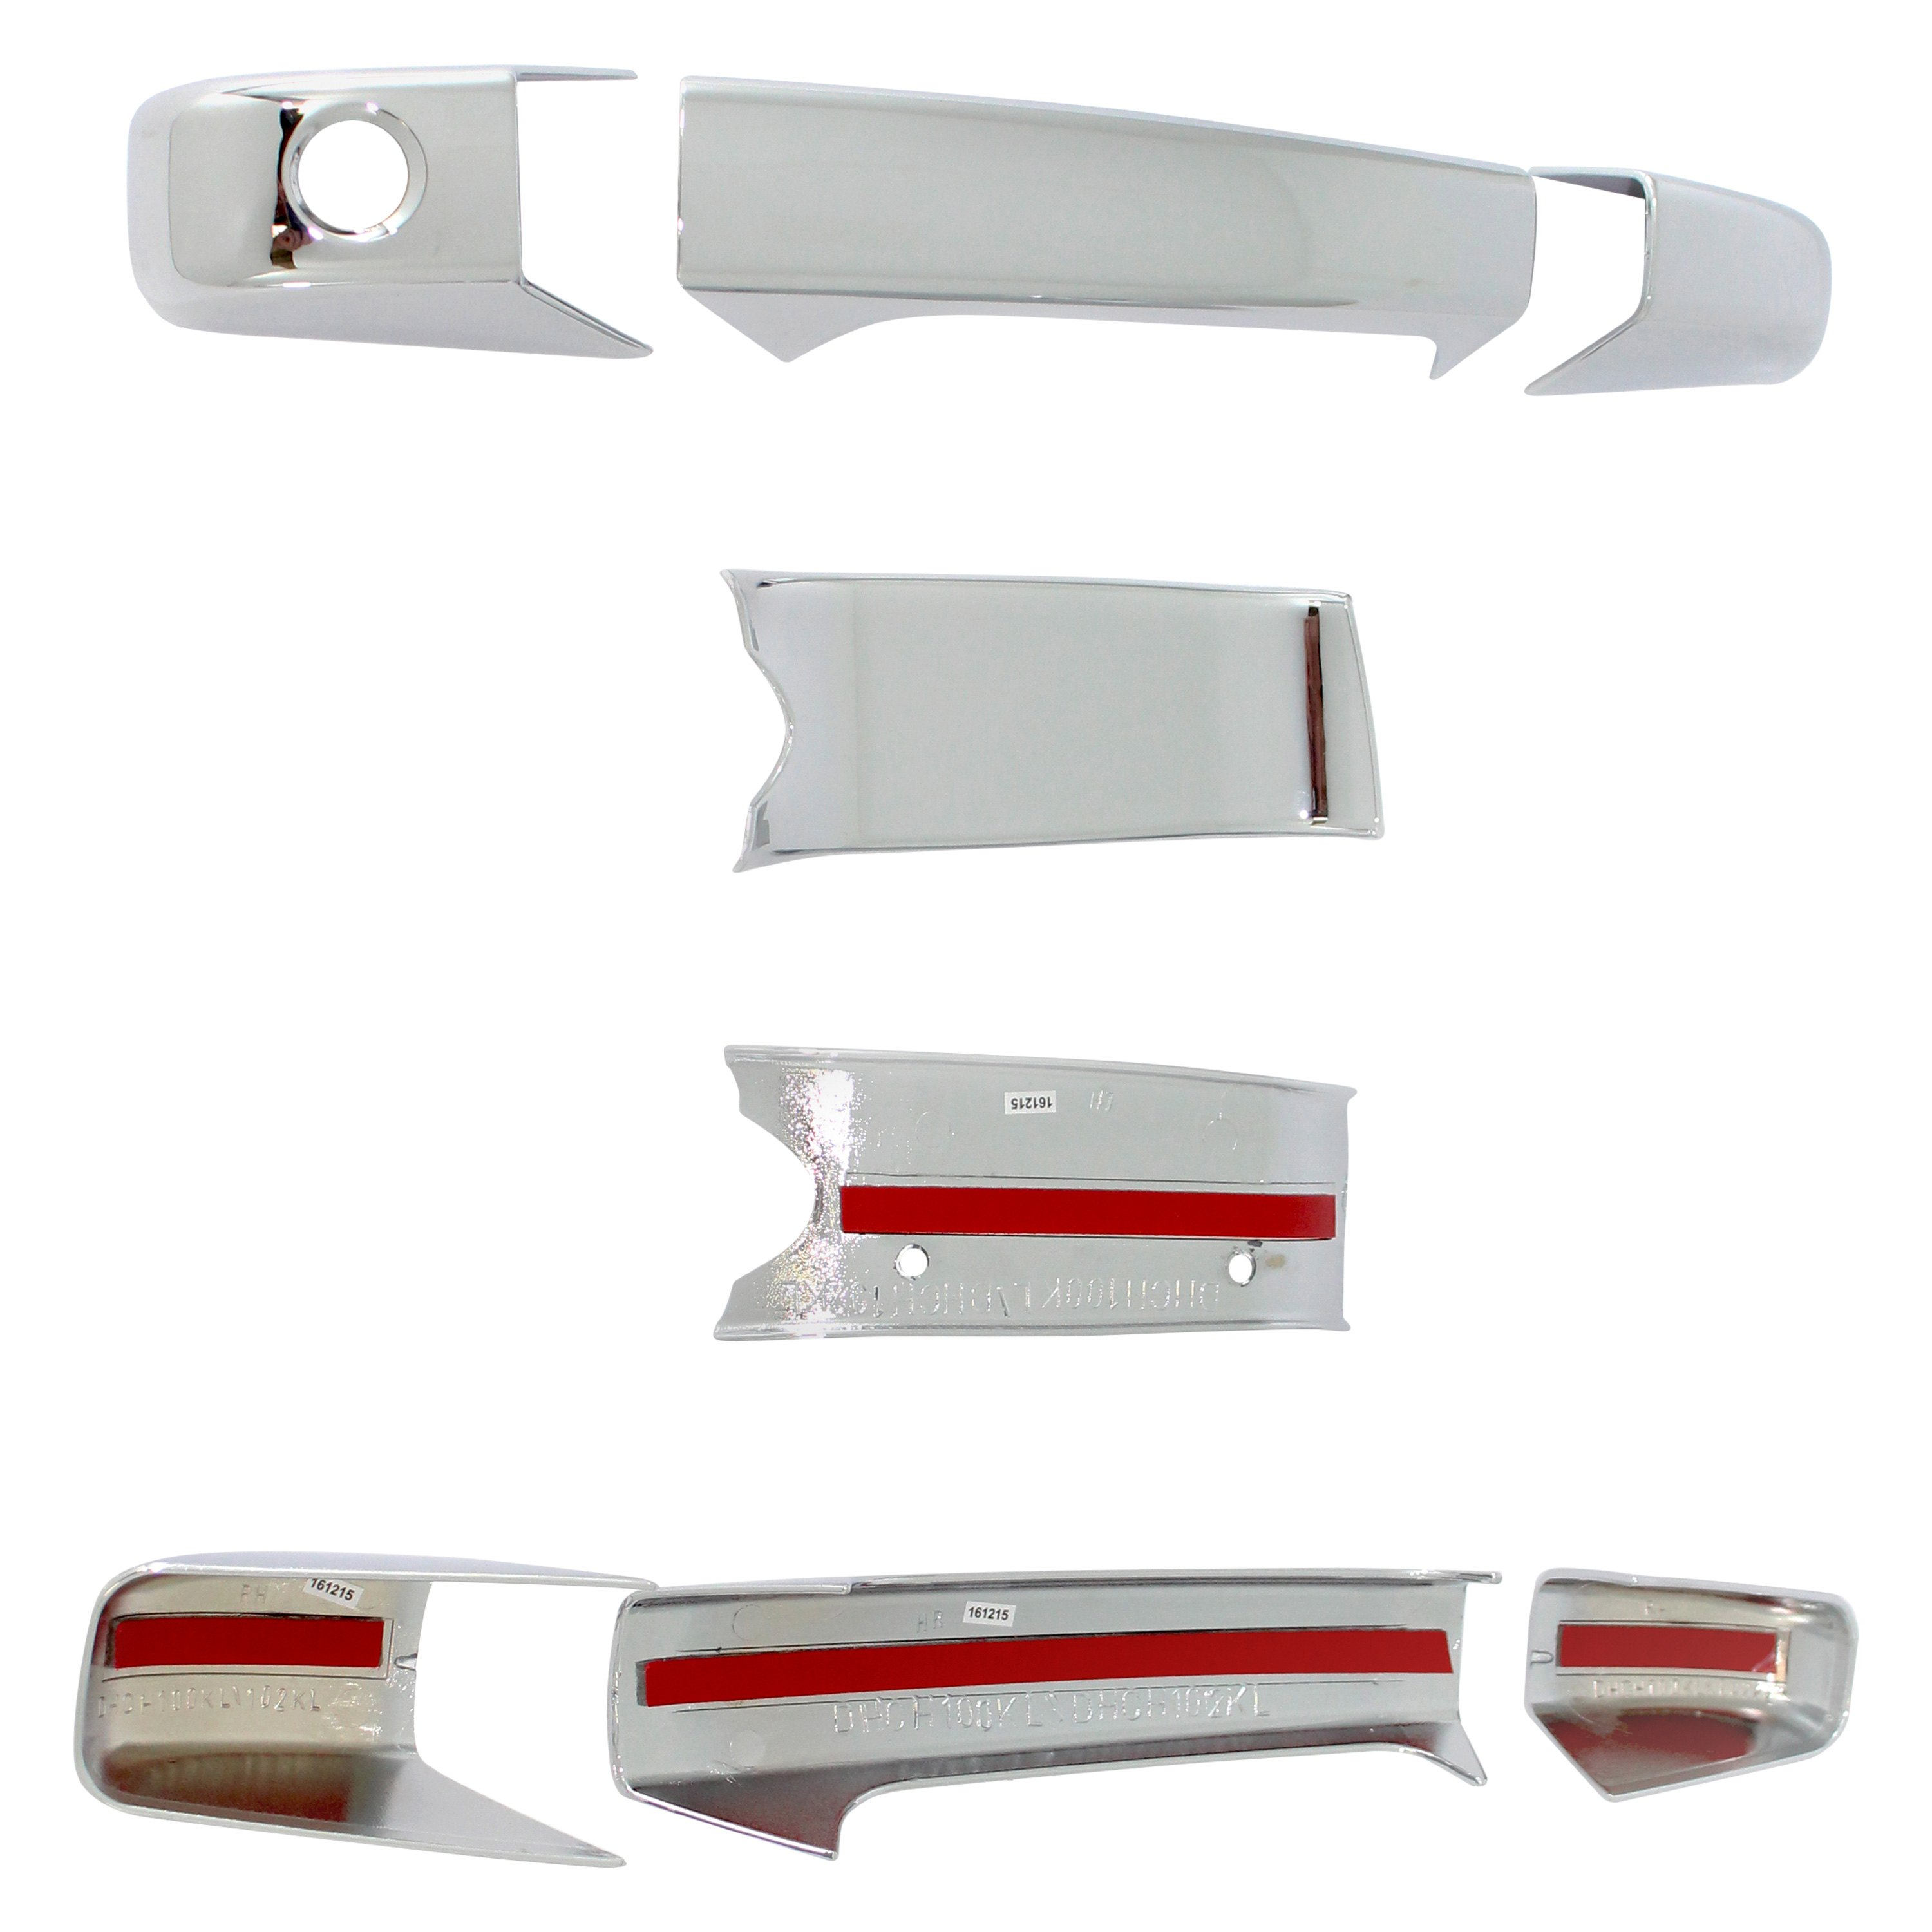 Carrichs 174 Dhch102kl Chrome Door Handle Covers